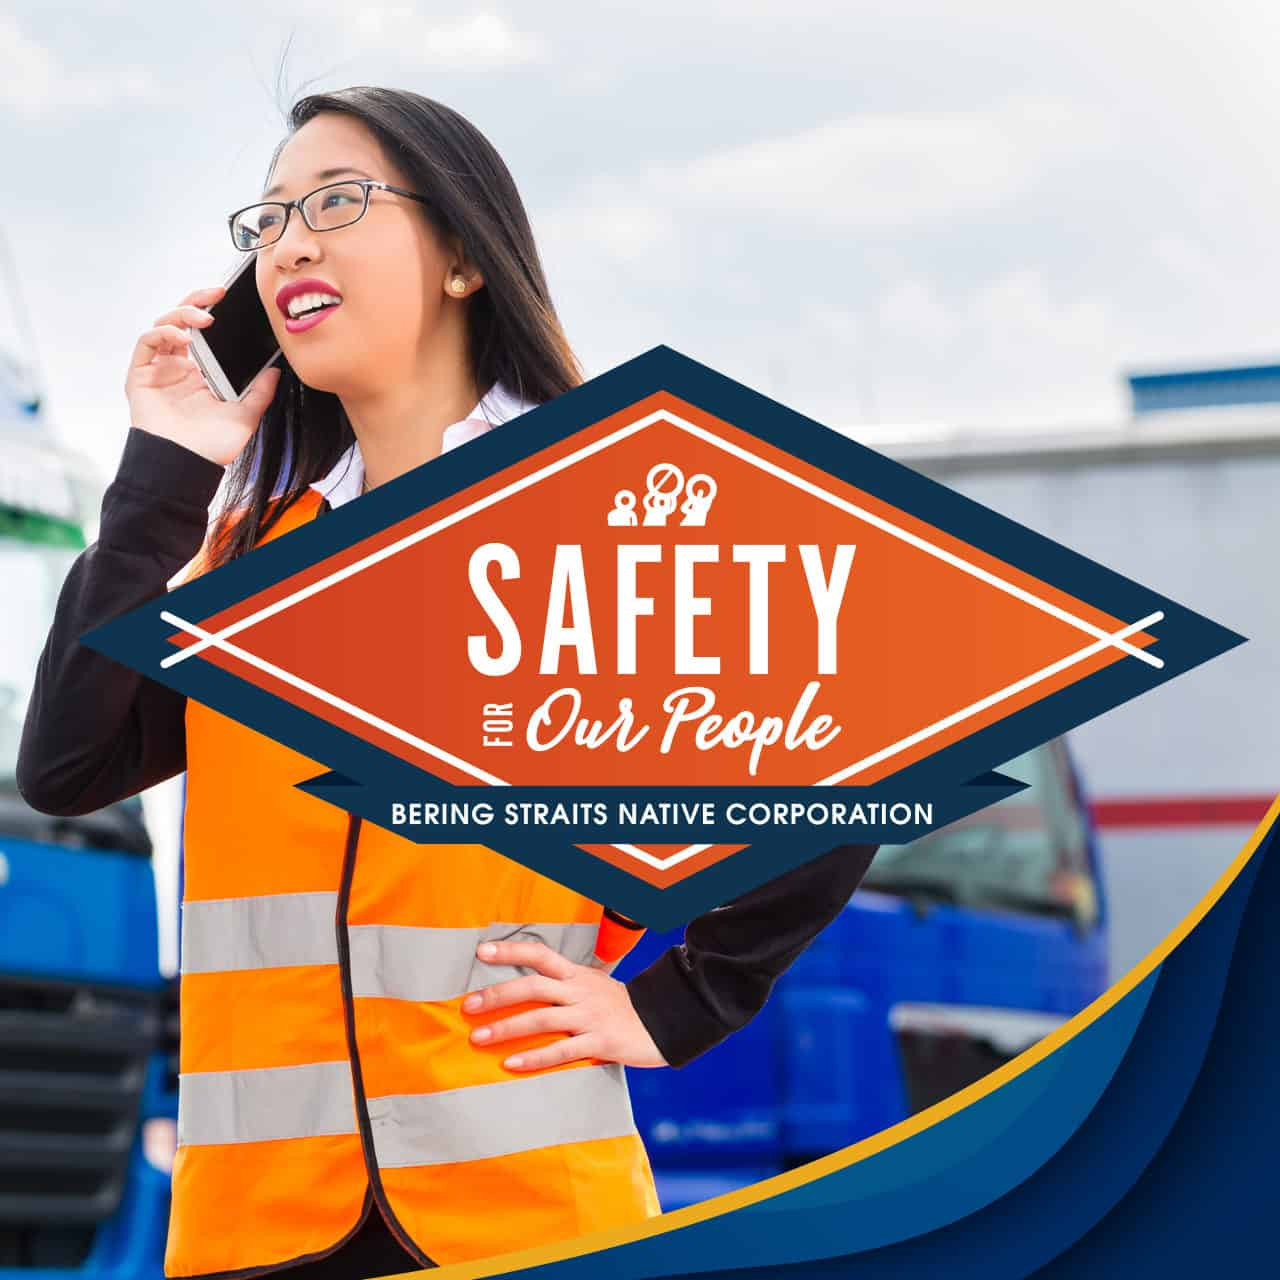 Bering Straits Native Corporation is committed to safety